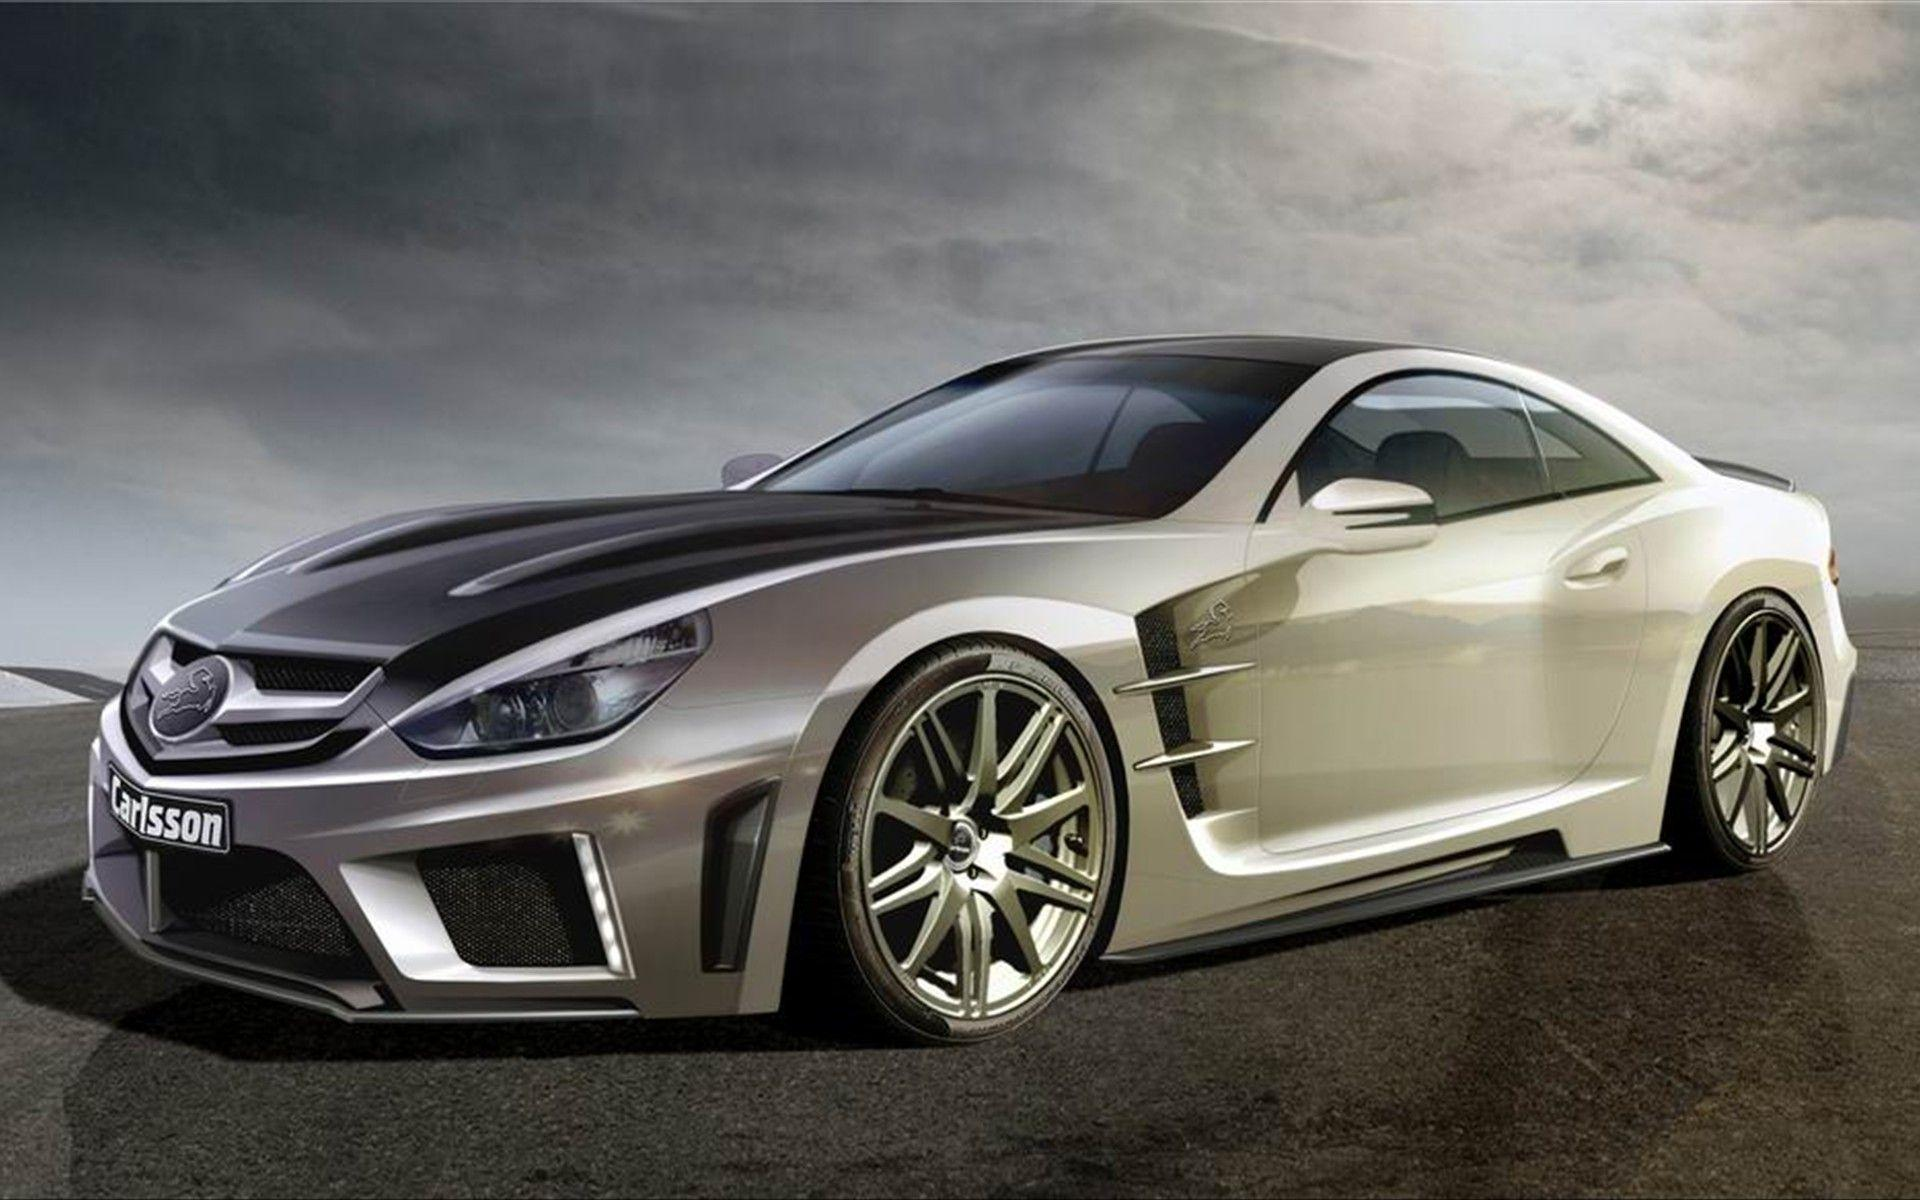 Carlsson C25 Super Car Wallpapers | HD Wallpapers